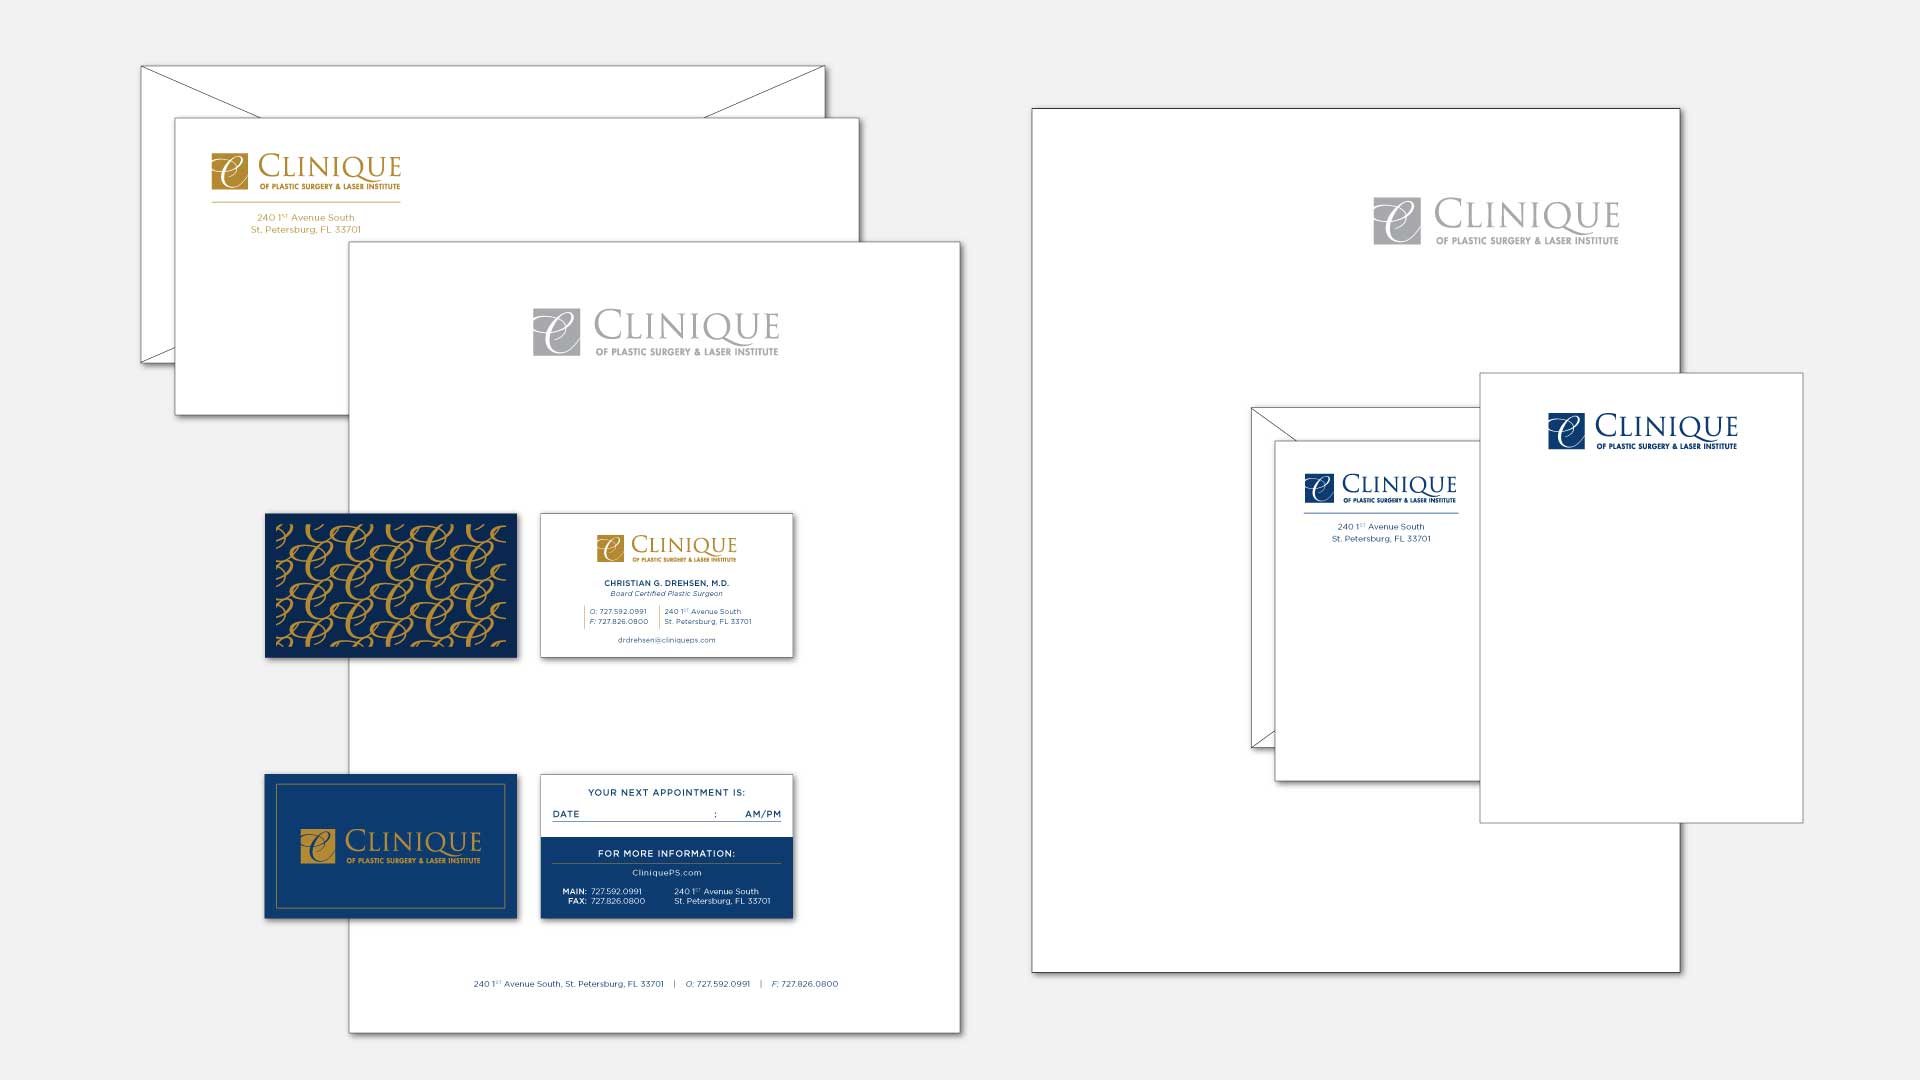 Clinique of Plastic Surgery and Laser Institute - Brand Identity